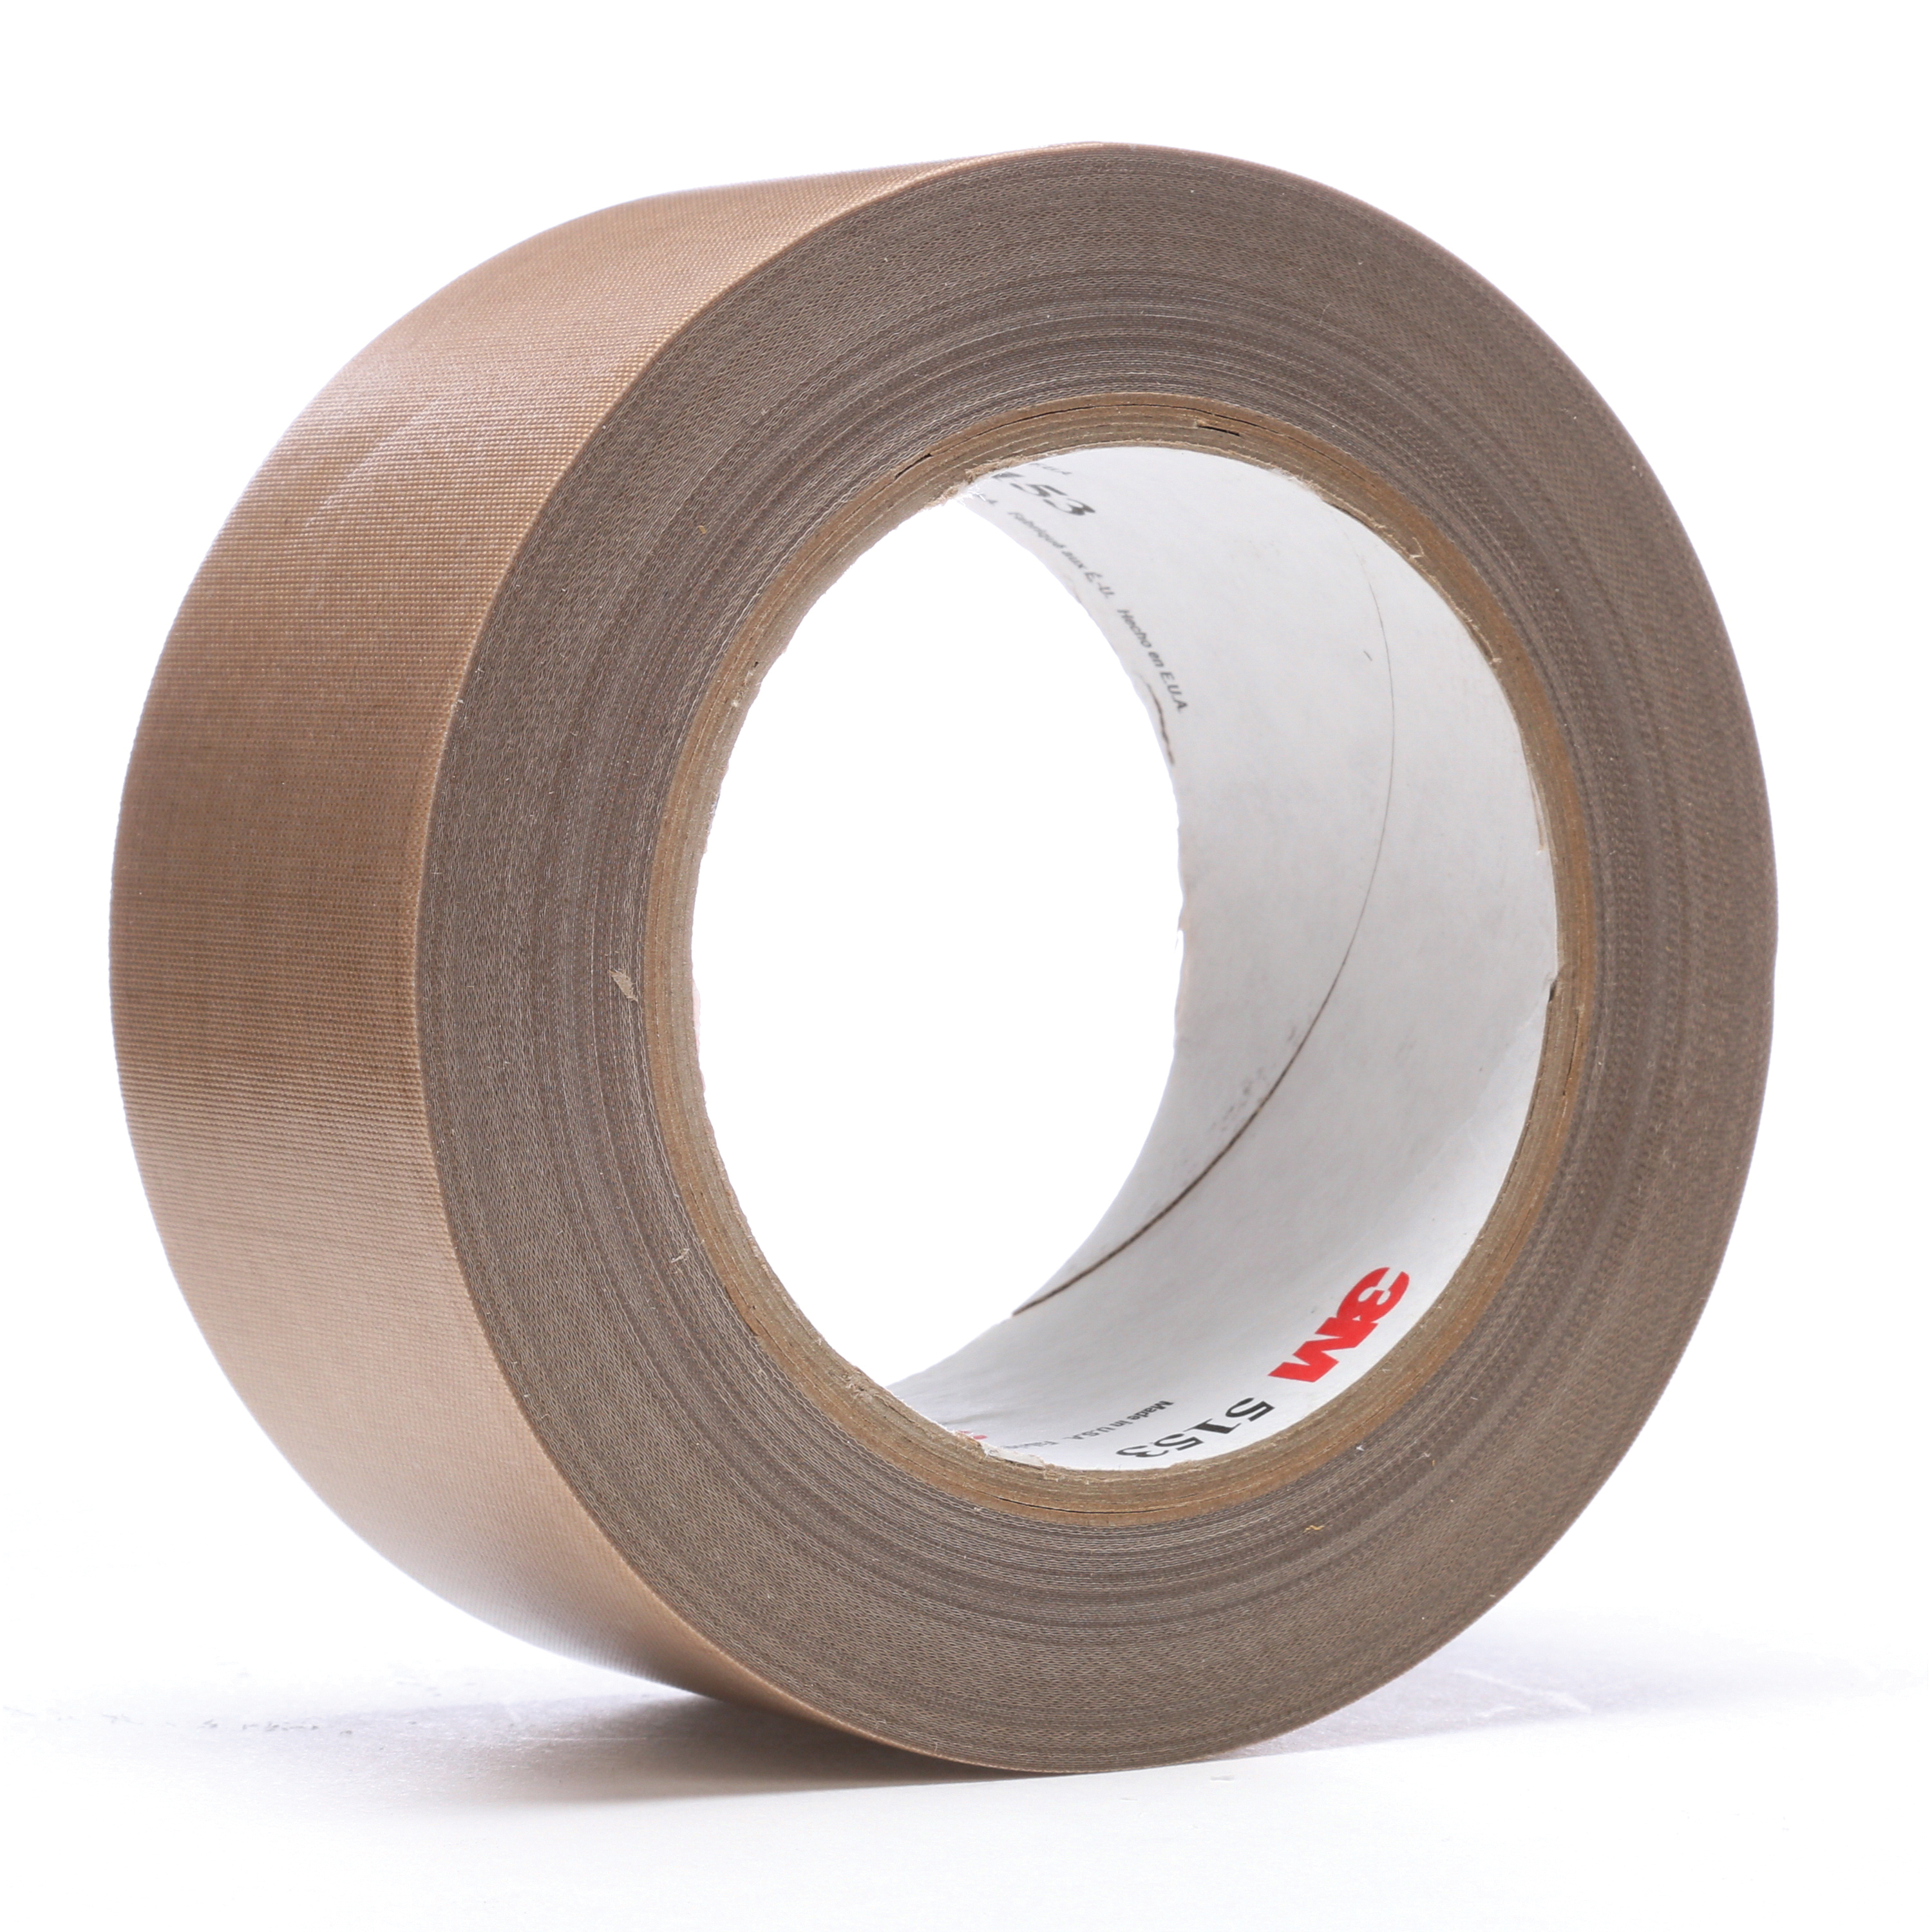 3M™ 021200-45637 General Purpose Glass Cloth Tape, 36 yd L x 2 in W, 8 mil THK, Silicon Adhesive, Glass Cloth Impregnated with PTFE Backing, Light Brown